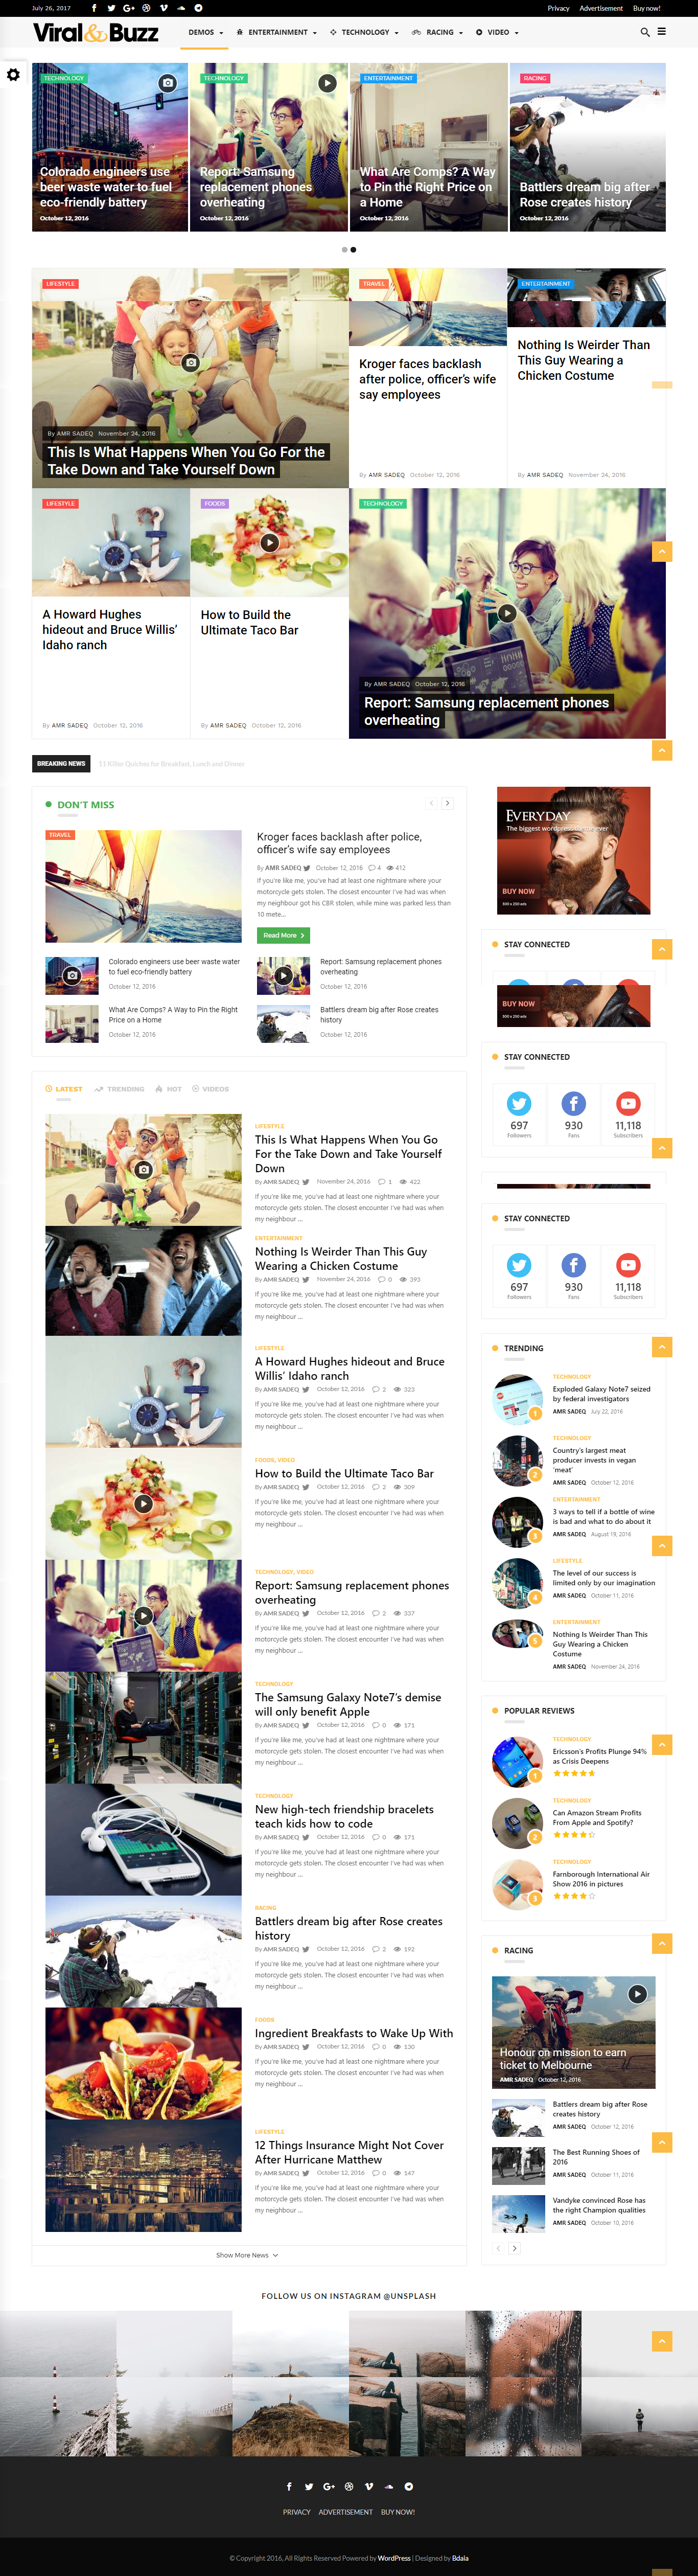 Blog Website Templates Everyday  Modish News Magazine And Blog Theme  Blog Templates